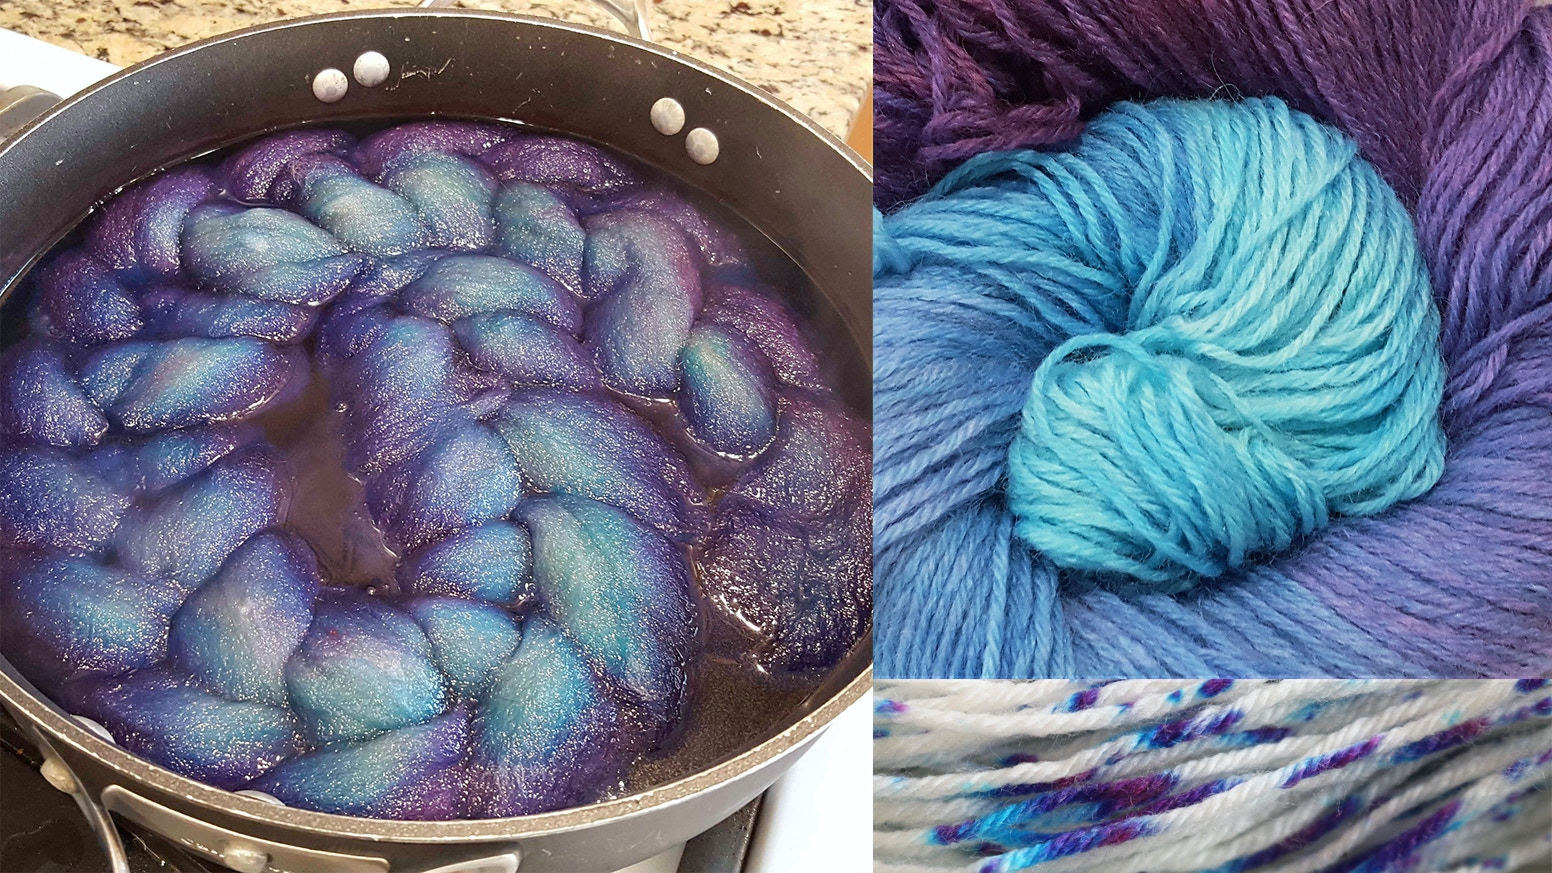 A ChemKnits video series experimenting with innovative ways to dye yarn using food coloring, acid dyes, natural dyes, and more.